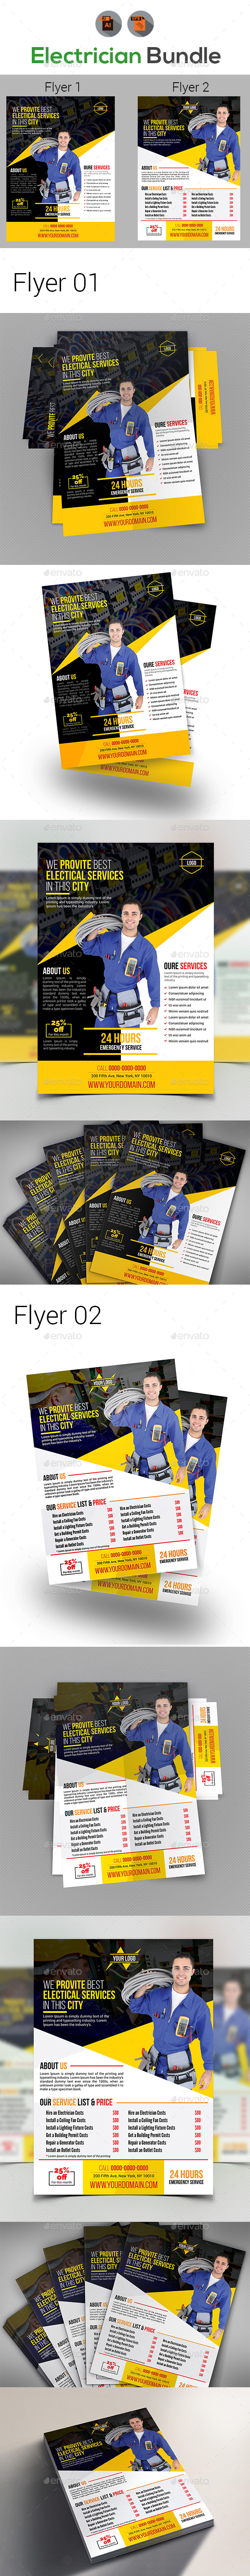 Electrical Services Flyers Templates